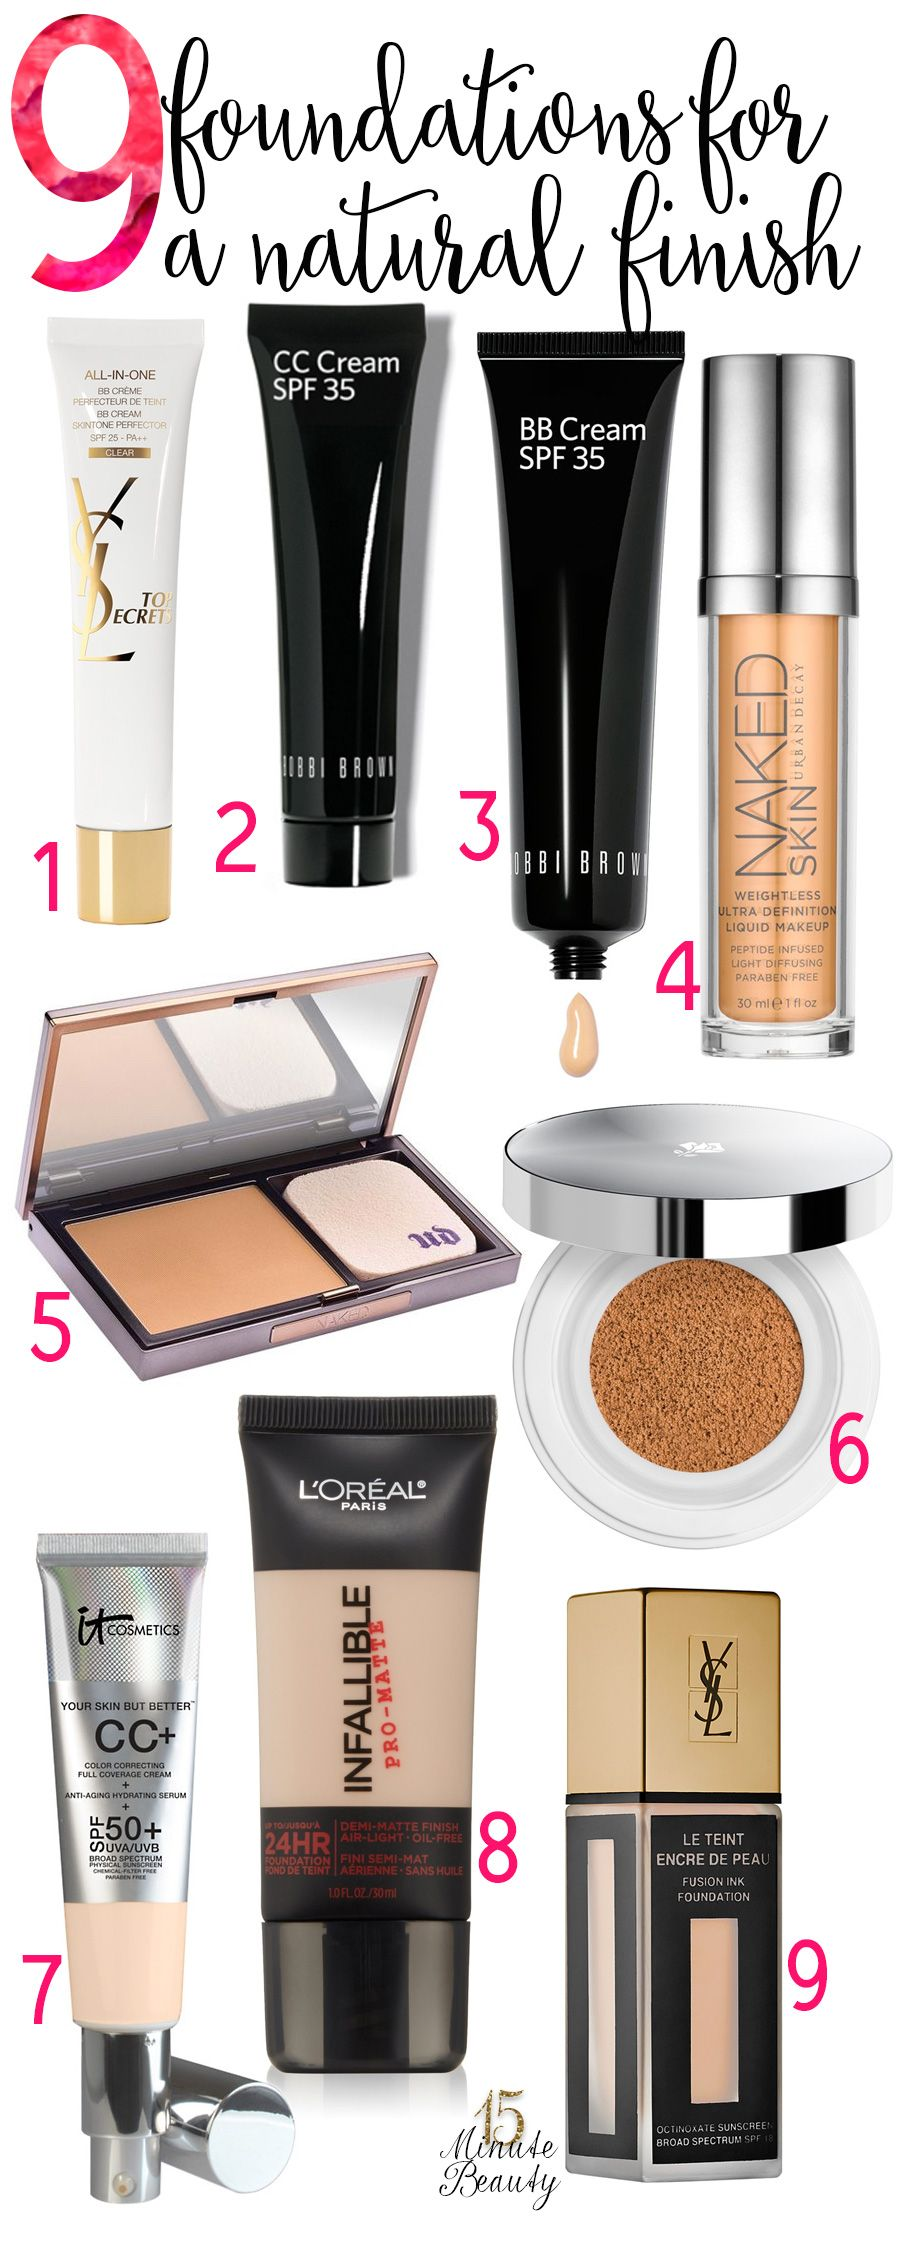 My Top 9 Foundations and BB Creams via @15 Minute Beauty